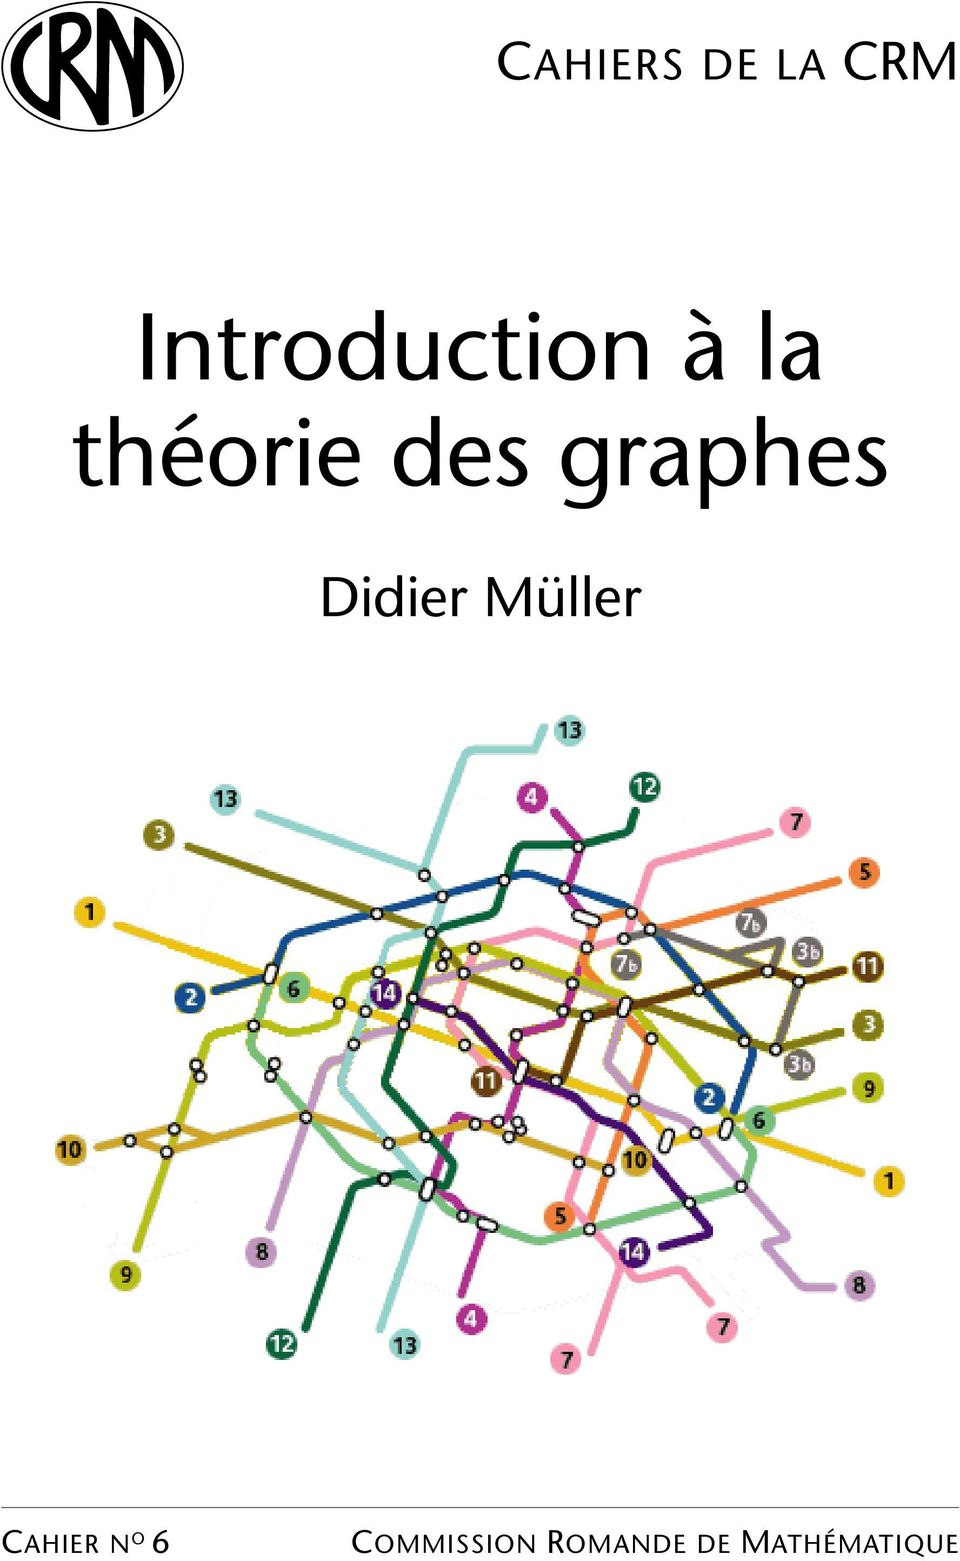 graphes Didier Müller CAHIER